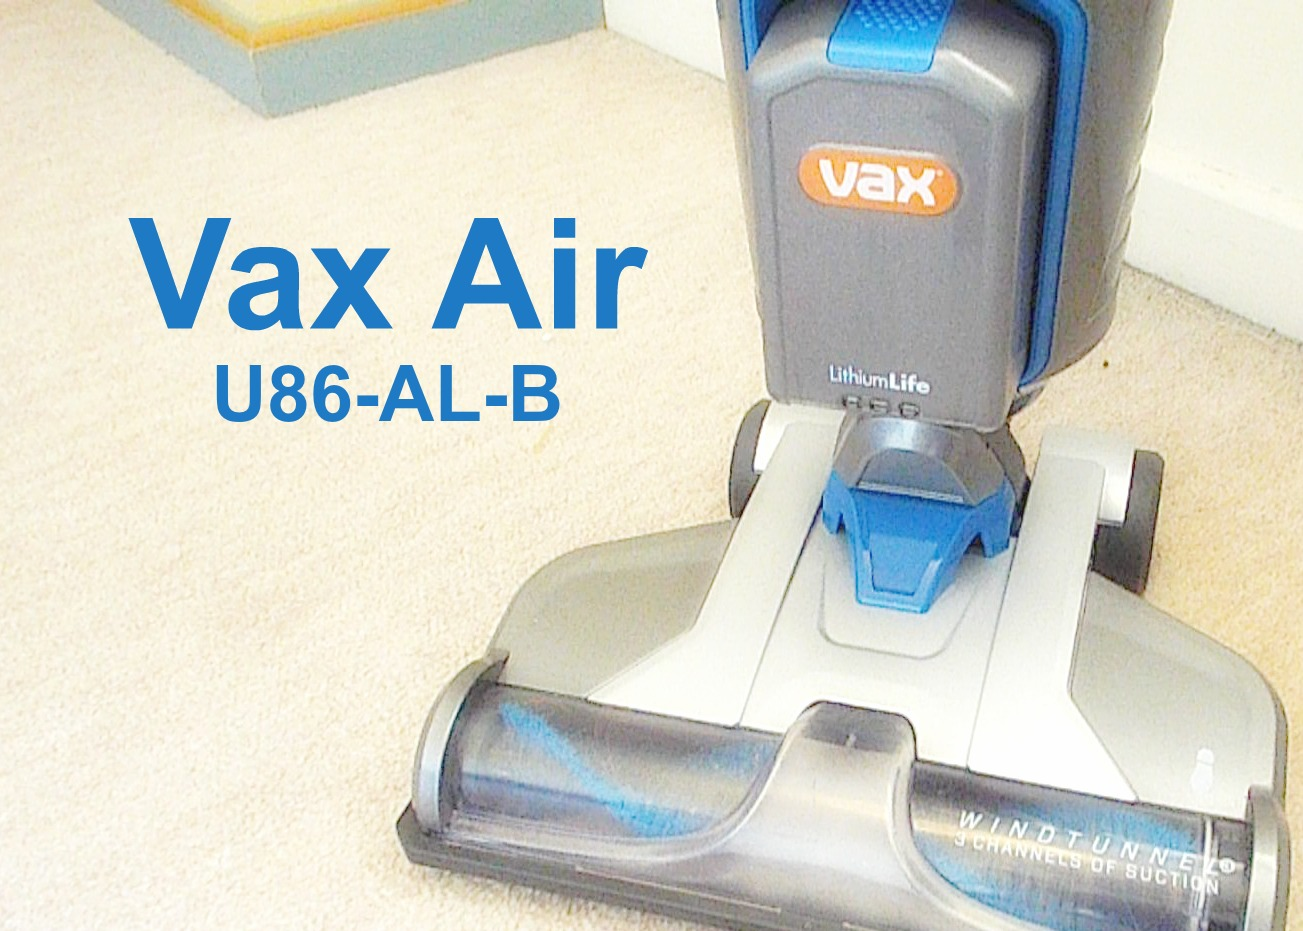 http://ao.com/product/u86alb-vax-air-cordless-bagless-cordless-vacuum-cleaner-blue-34587-155.aspx?cmredirectionvalue=U86-AL-B_BL